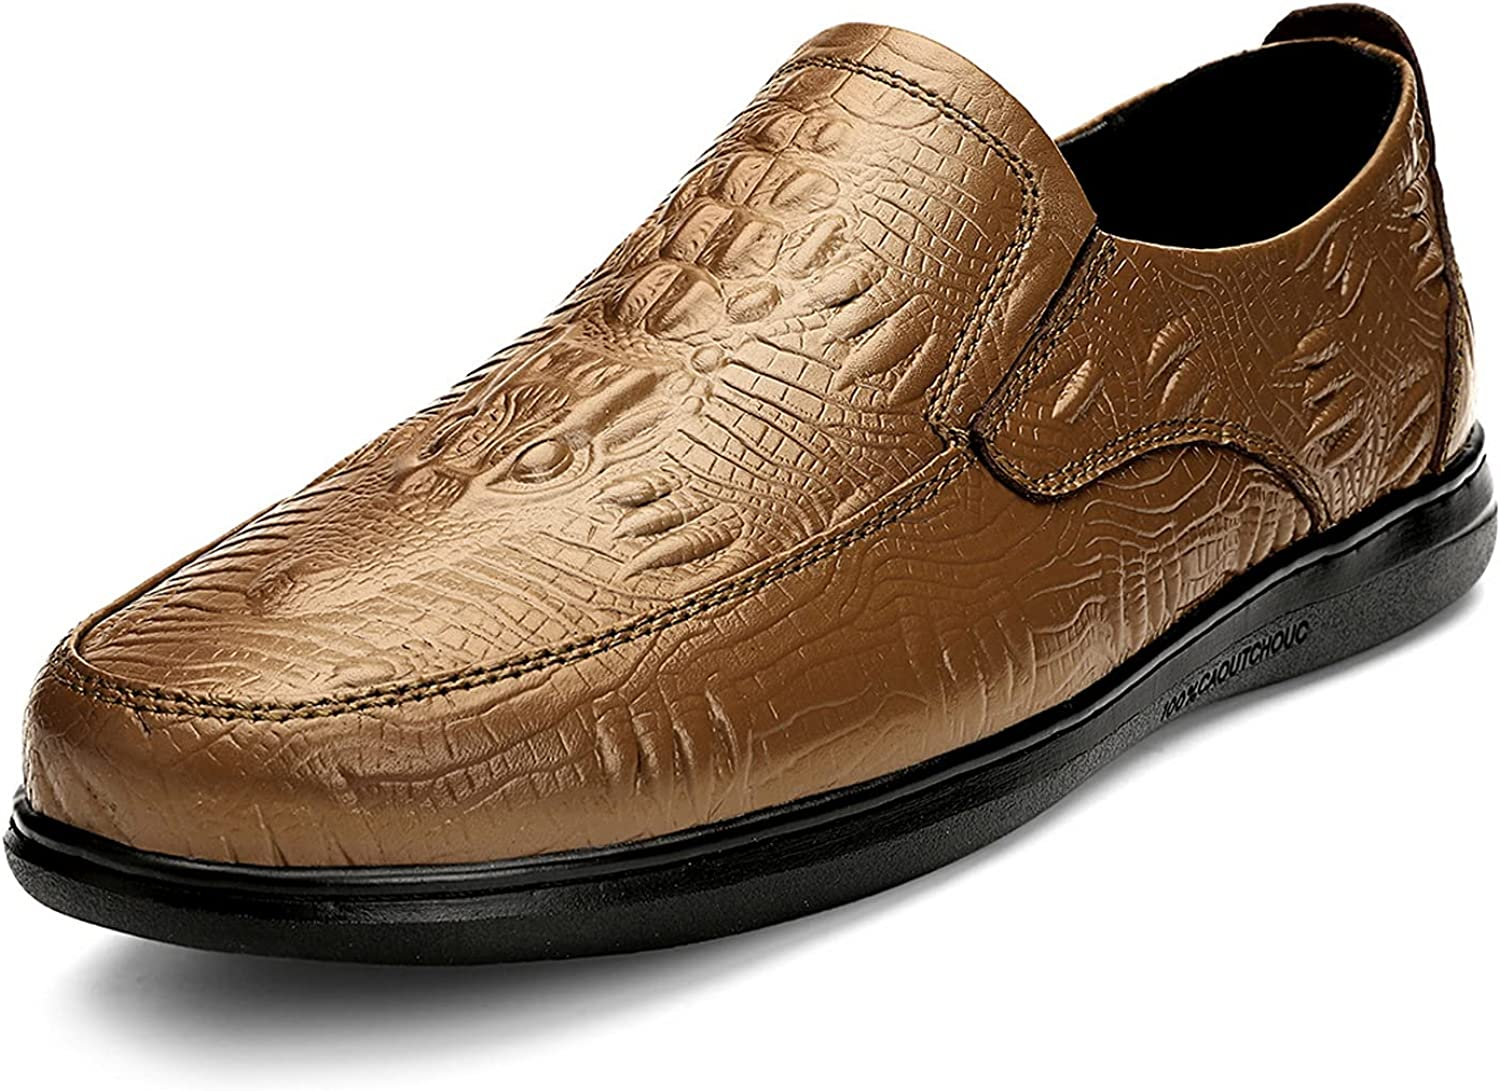 Dress Gifts Oxfords Shoes for Men Alligator Sl Leather Crocodile Print Phoenix Mall